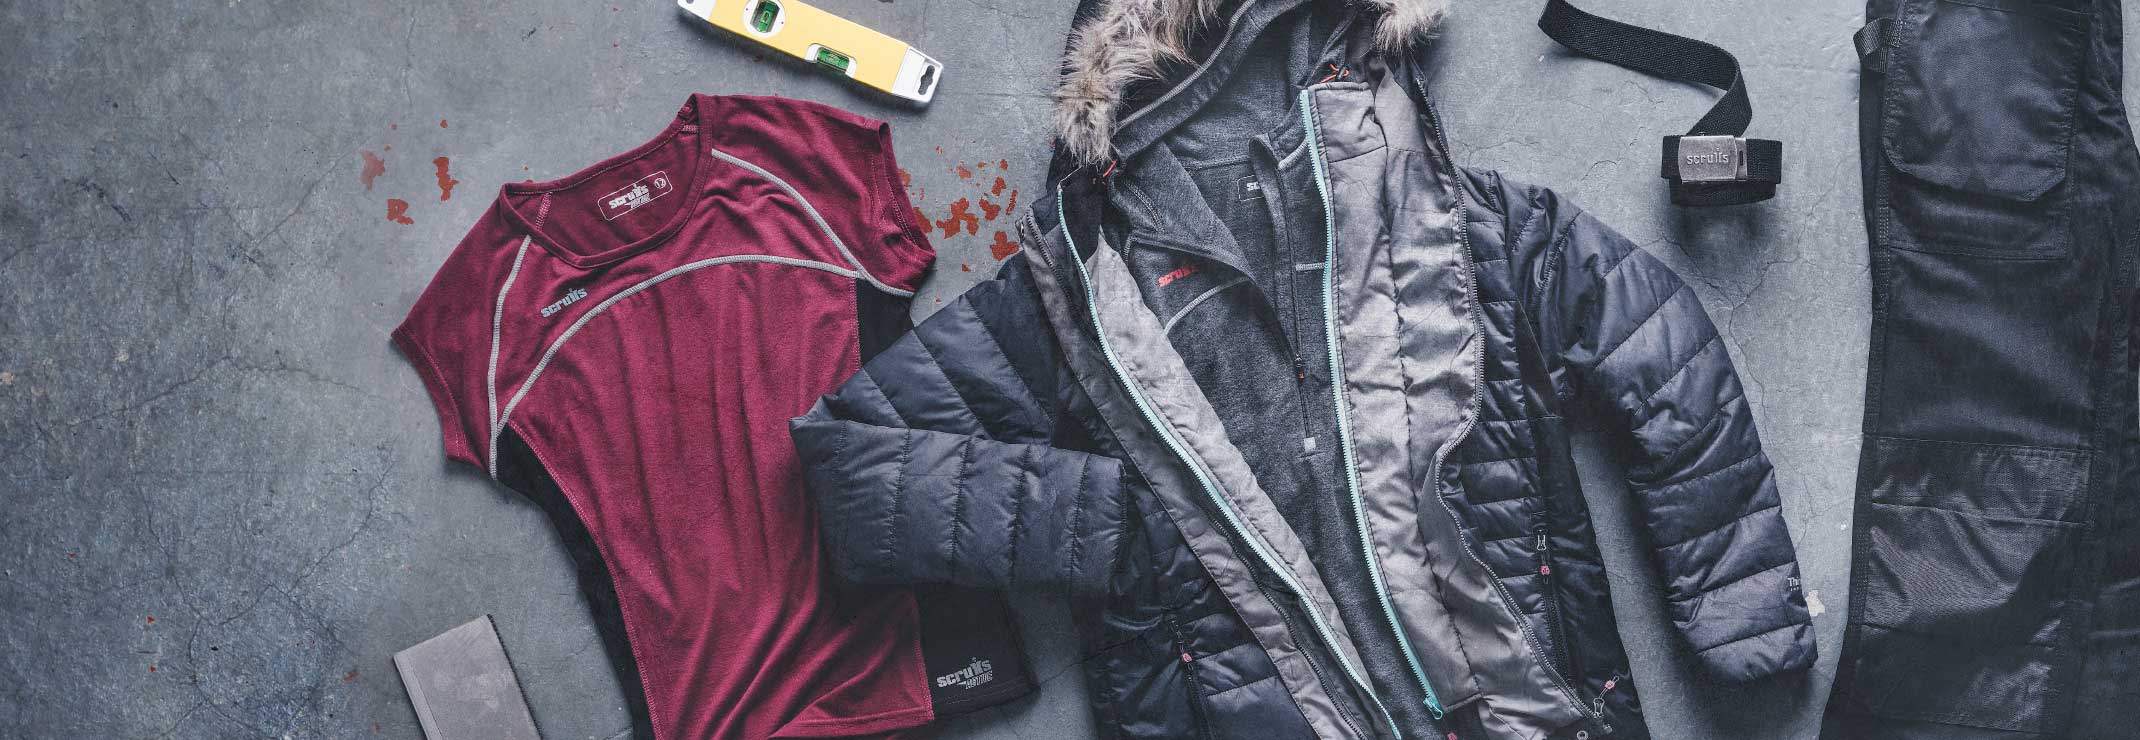 Scruffs  FULL WOMEN'S RANGE